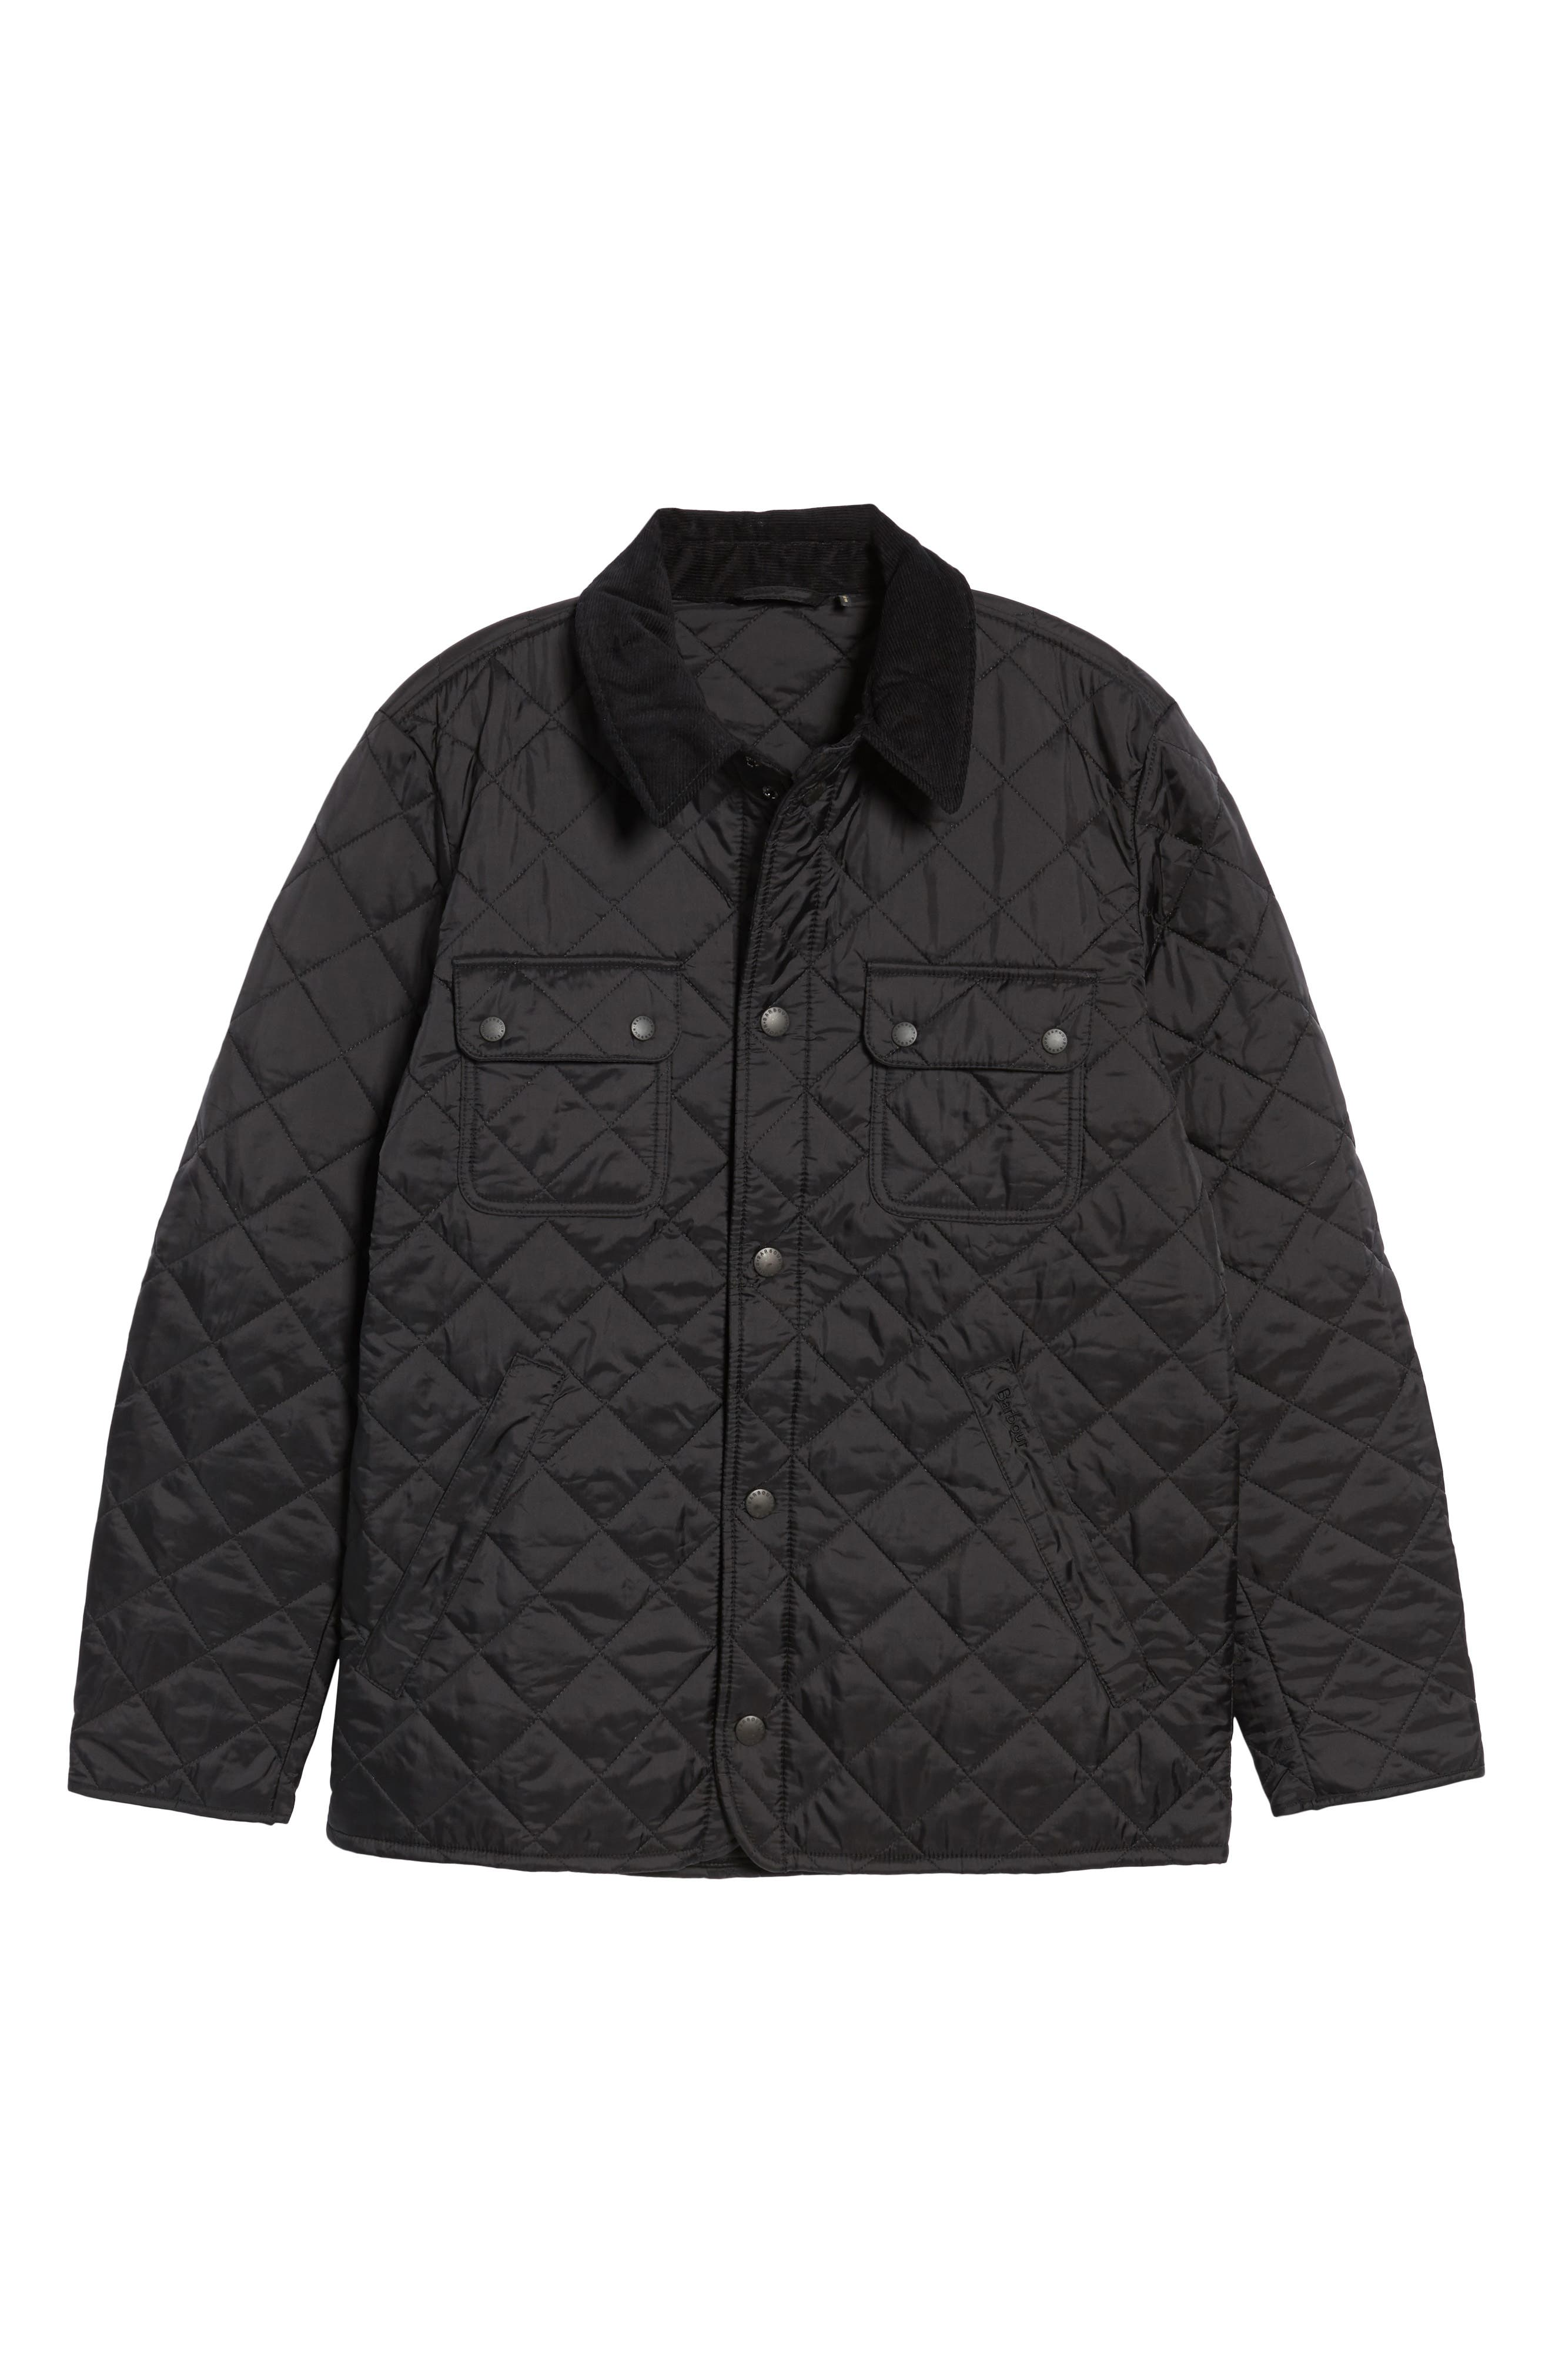 BARBOUR, 'Tinford' Regular Fit Quilted Jacket, Main thumbnail 1, color, 001